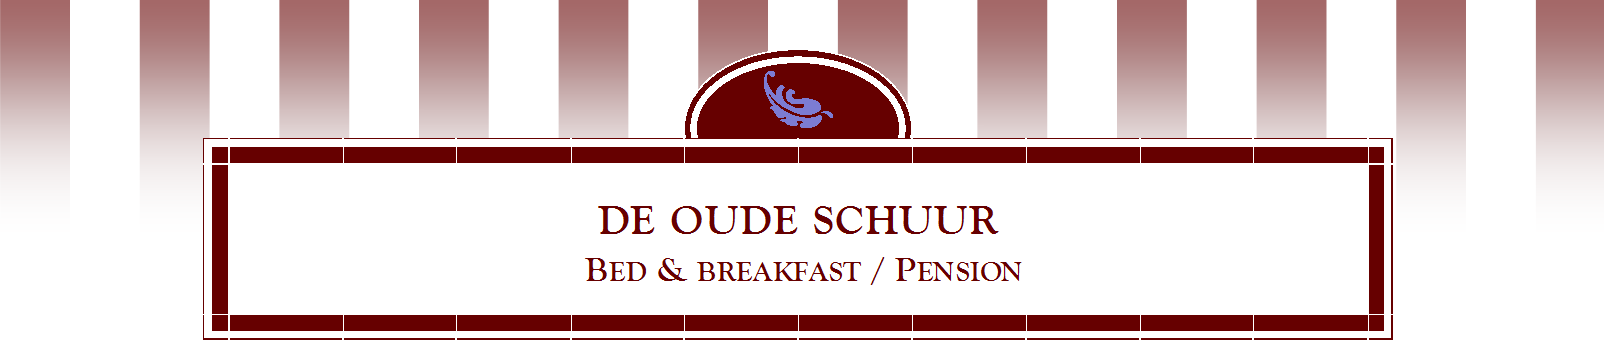 Bed and Breakfast-Pension Arnhem Nijmegen